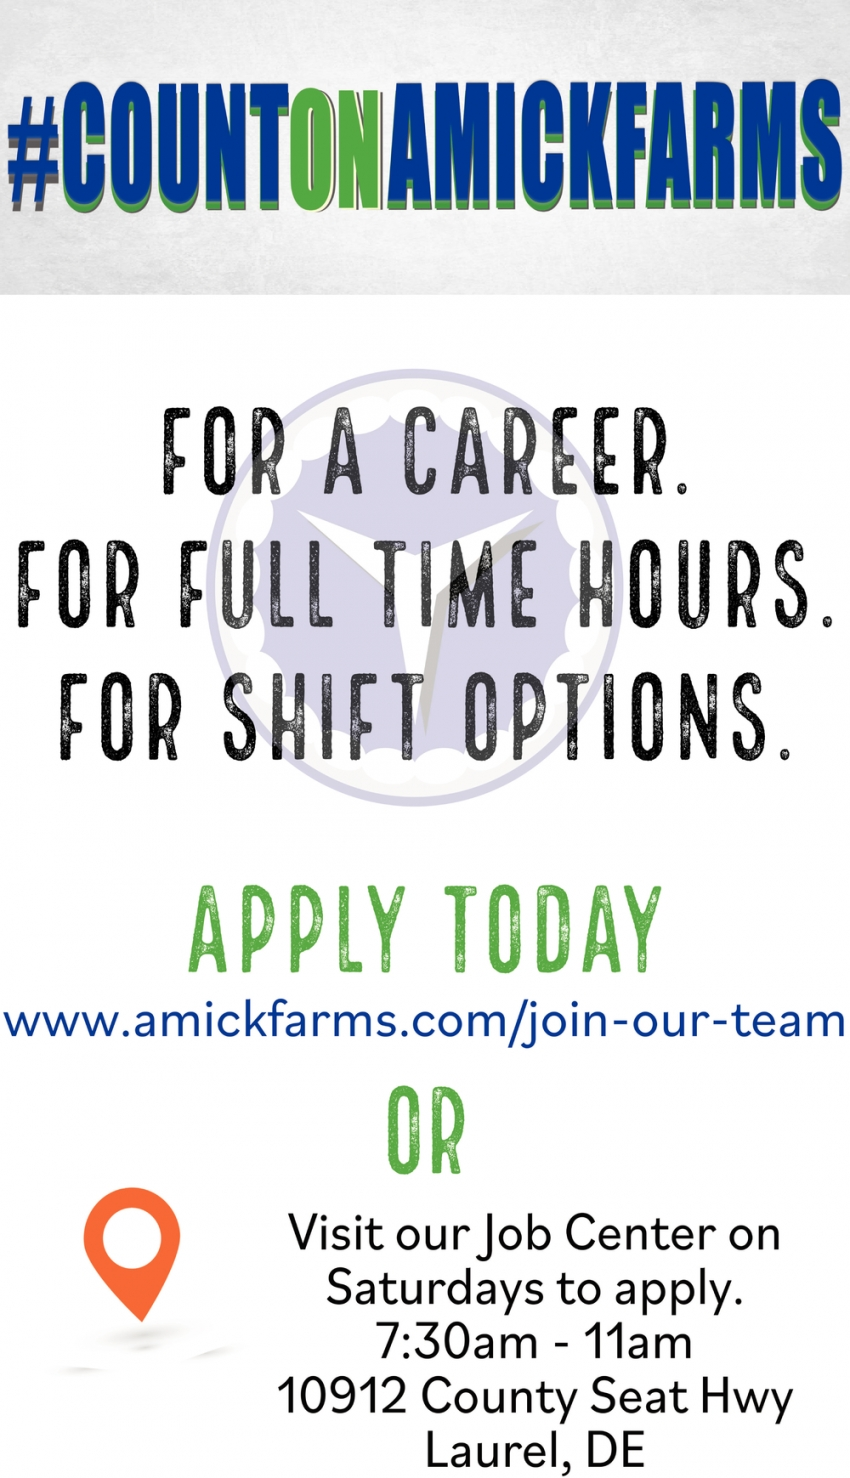 Apply Today